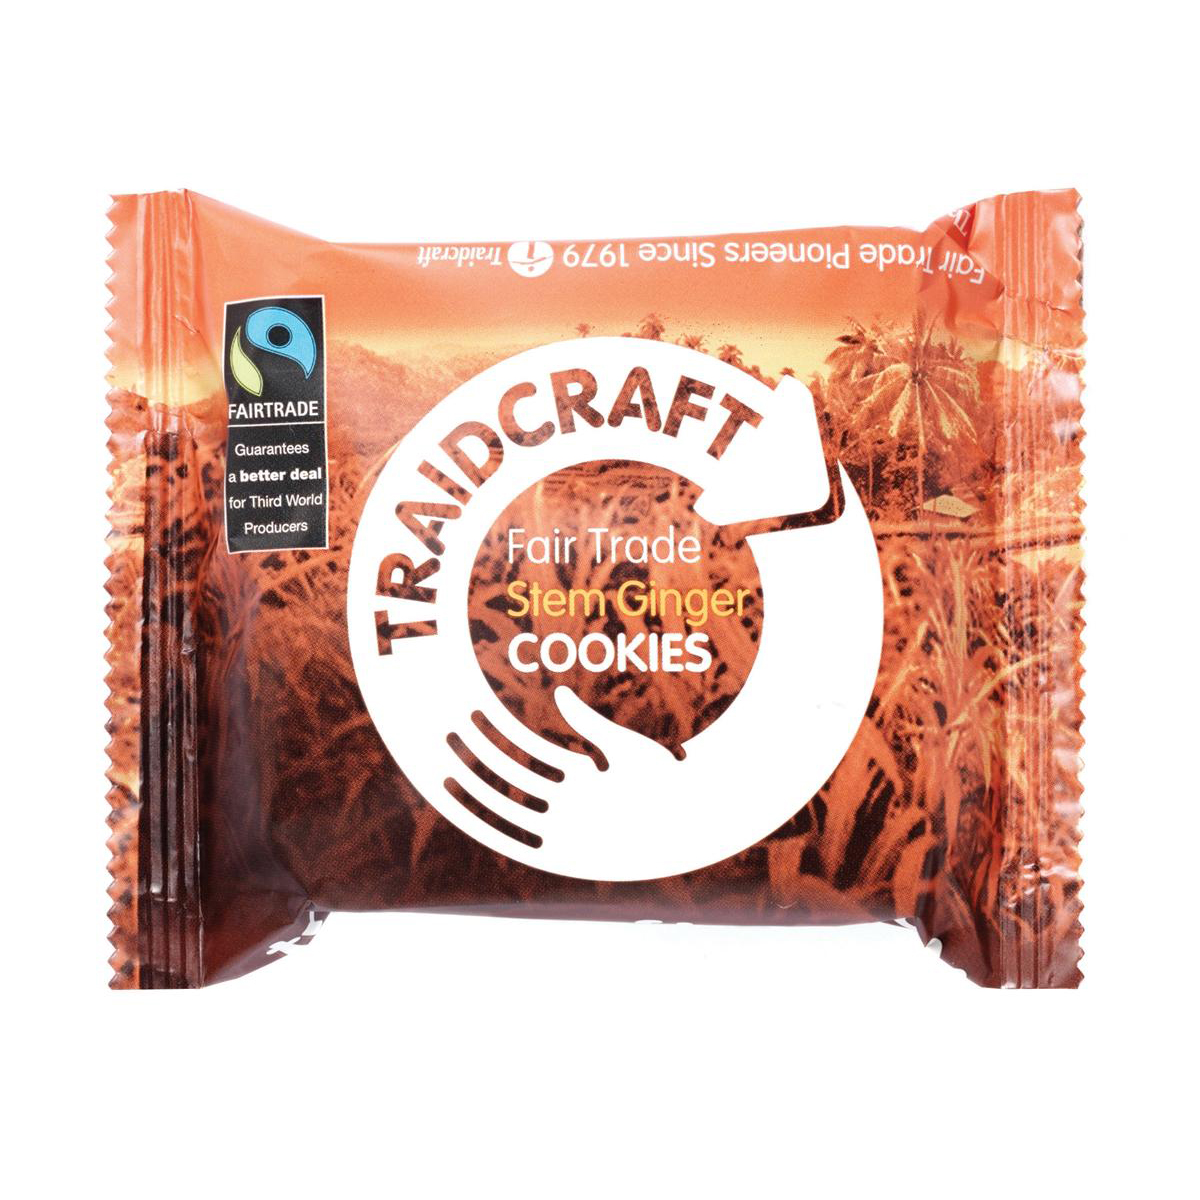 Traidcraft Cookies Stem Ginger Fairtrade 2 per Minipack Ref A07821 Pack 16